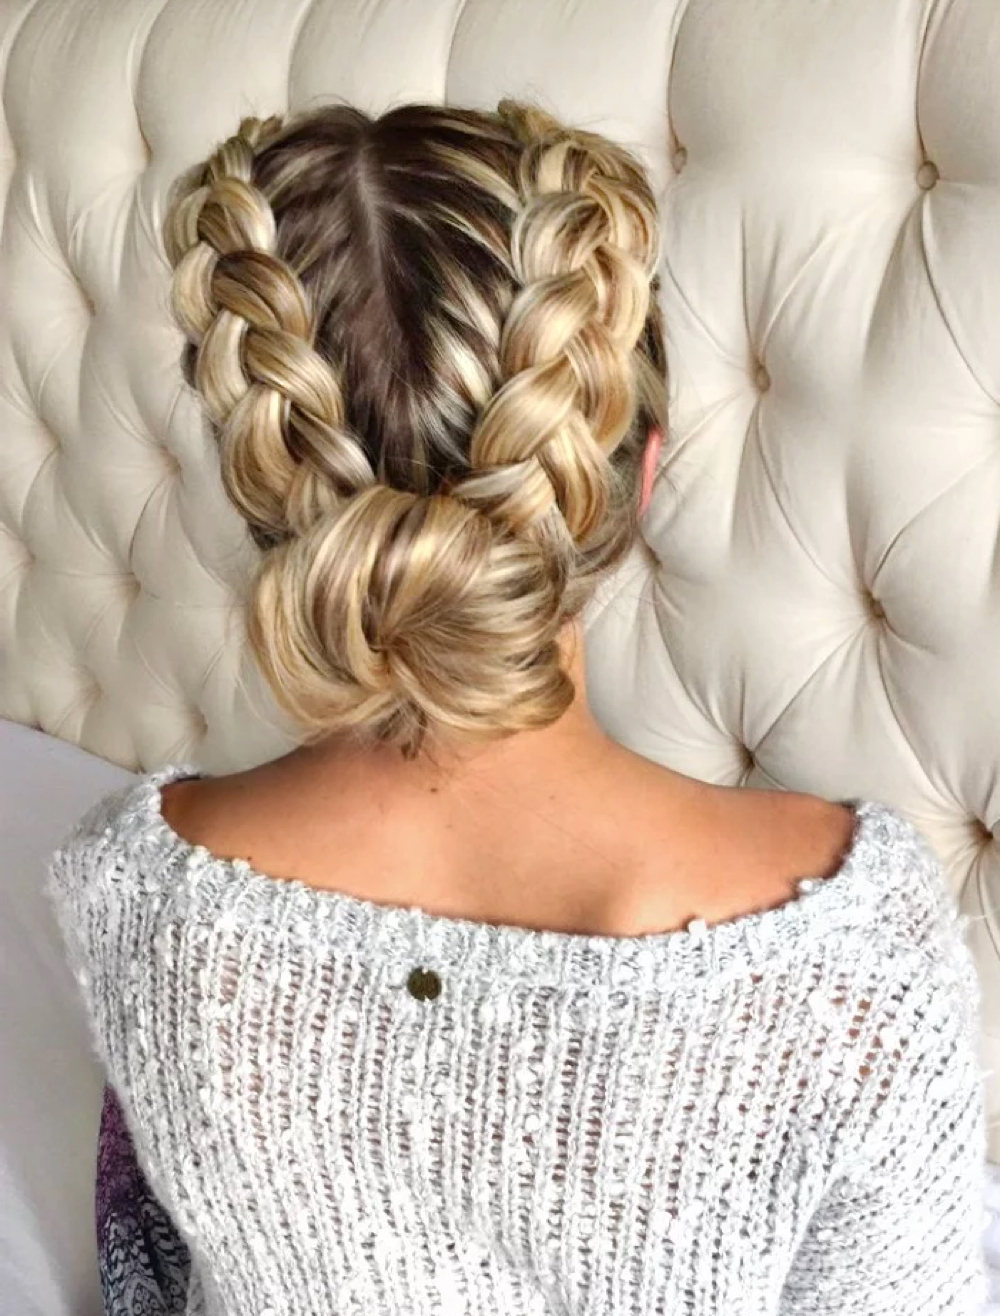 29 Gorgeous Braided Updo Ideas For 2019 Throughout Widely Used Chic Waterfall Braid Prom Updos (View 17 of 20)